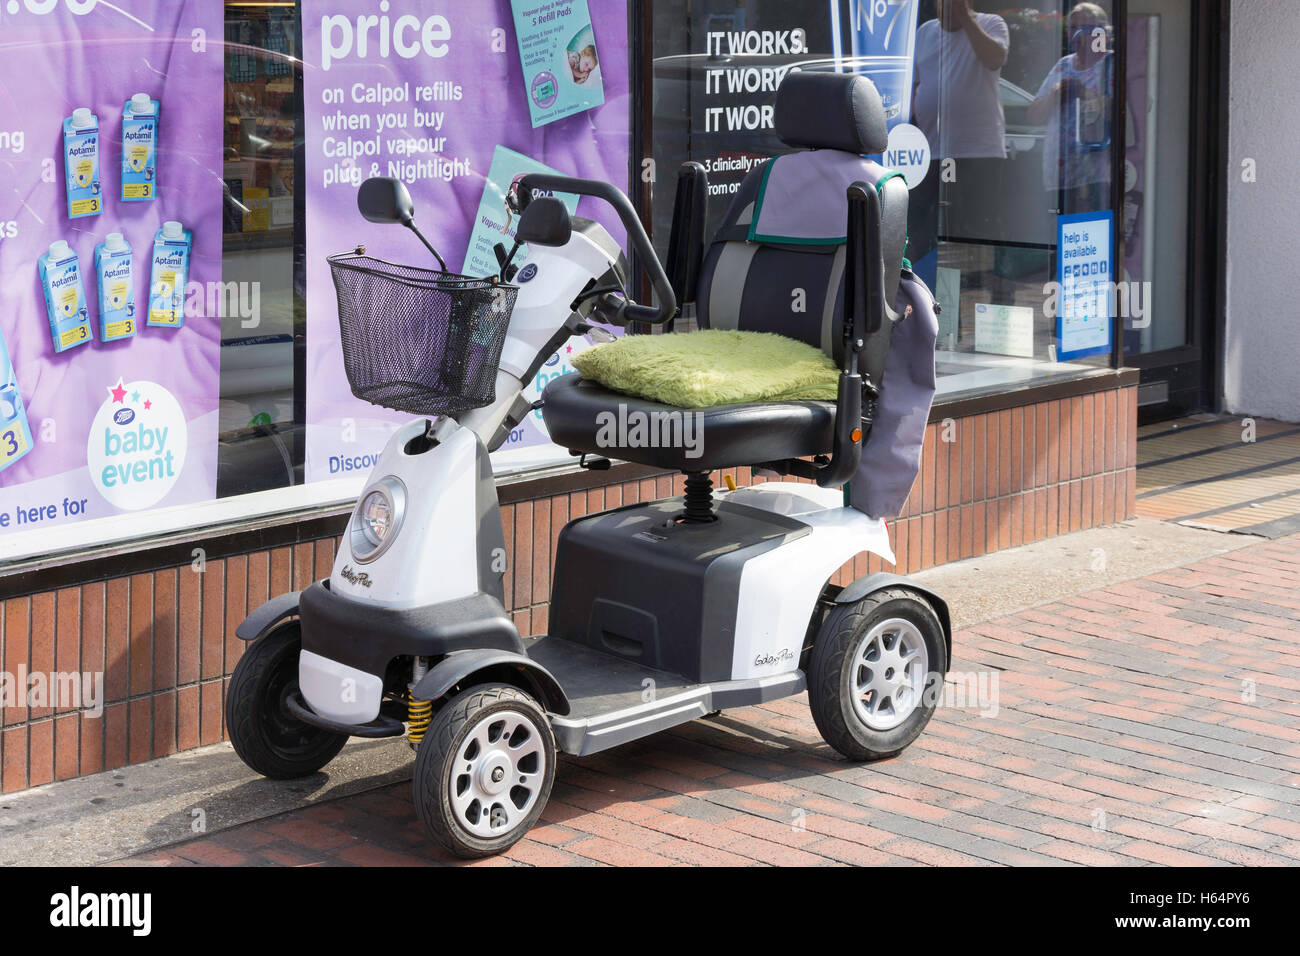 Galaxy Plus mobility scooter outside Boots store, High Street, Sittingbourne, Kent, England, United Kingdom - Stock Image